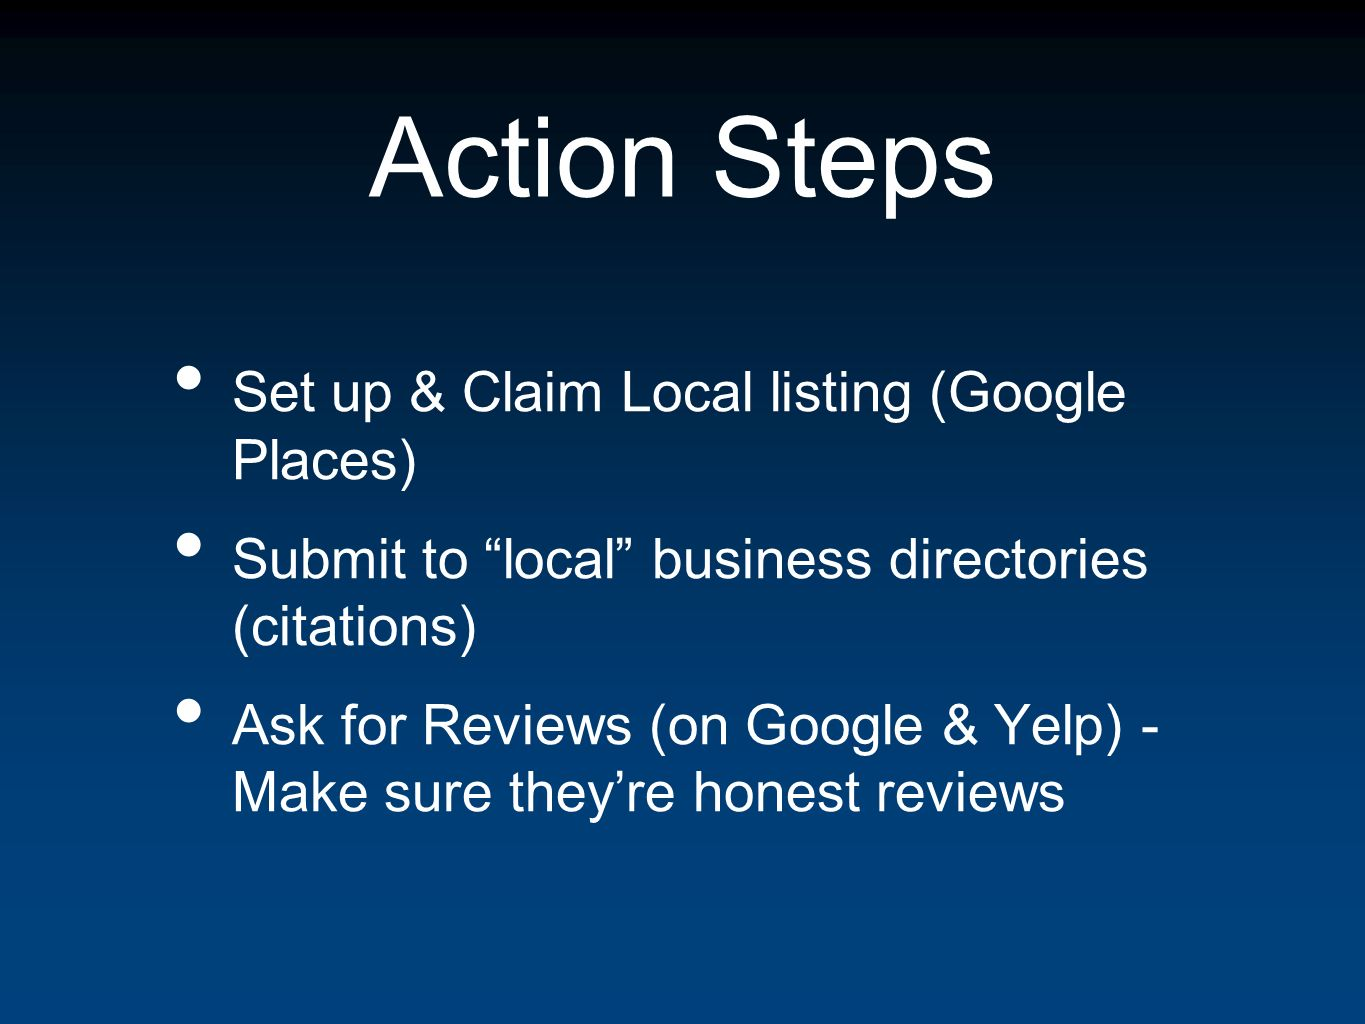 Action Steps Set up & Claim Local listing (Google Places) Submit to local business directories (citations) Ask for Reviews (on Google & Yelp) - Make sure theyre honest reviews